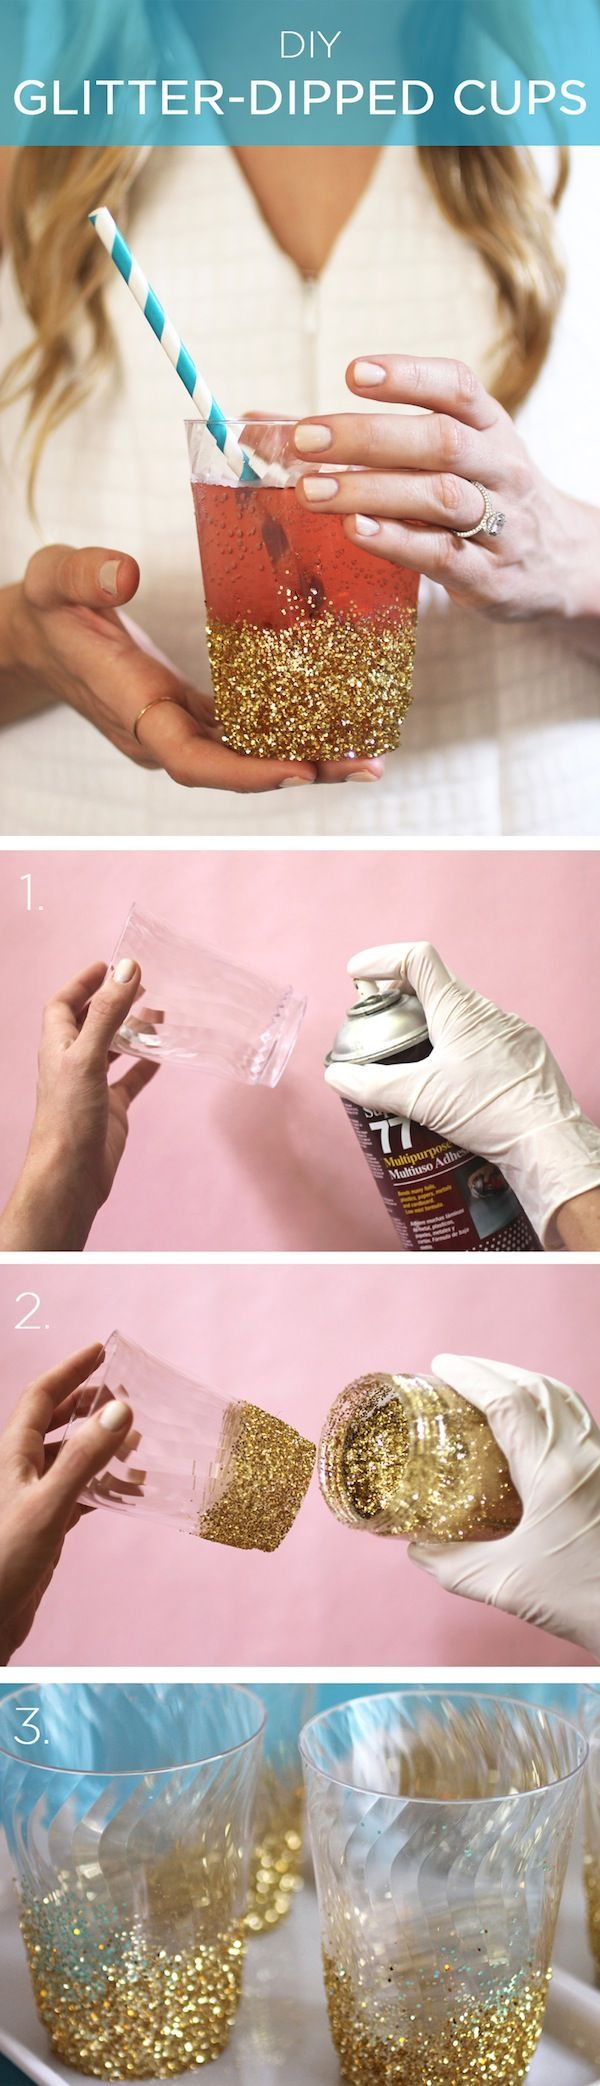 Add some glam to your drink wear for New Year's Eve with #DIY Glitter-Dipped Cups.